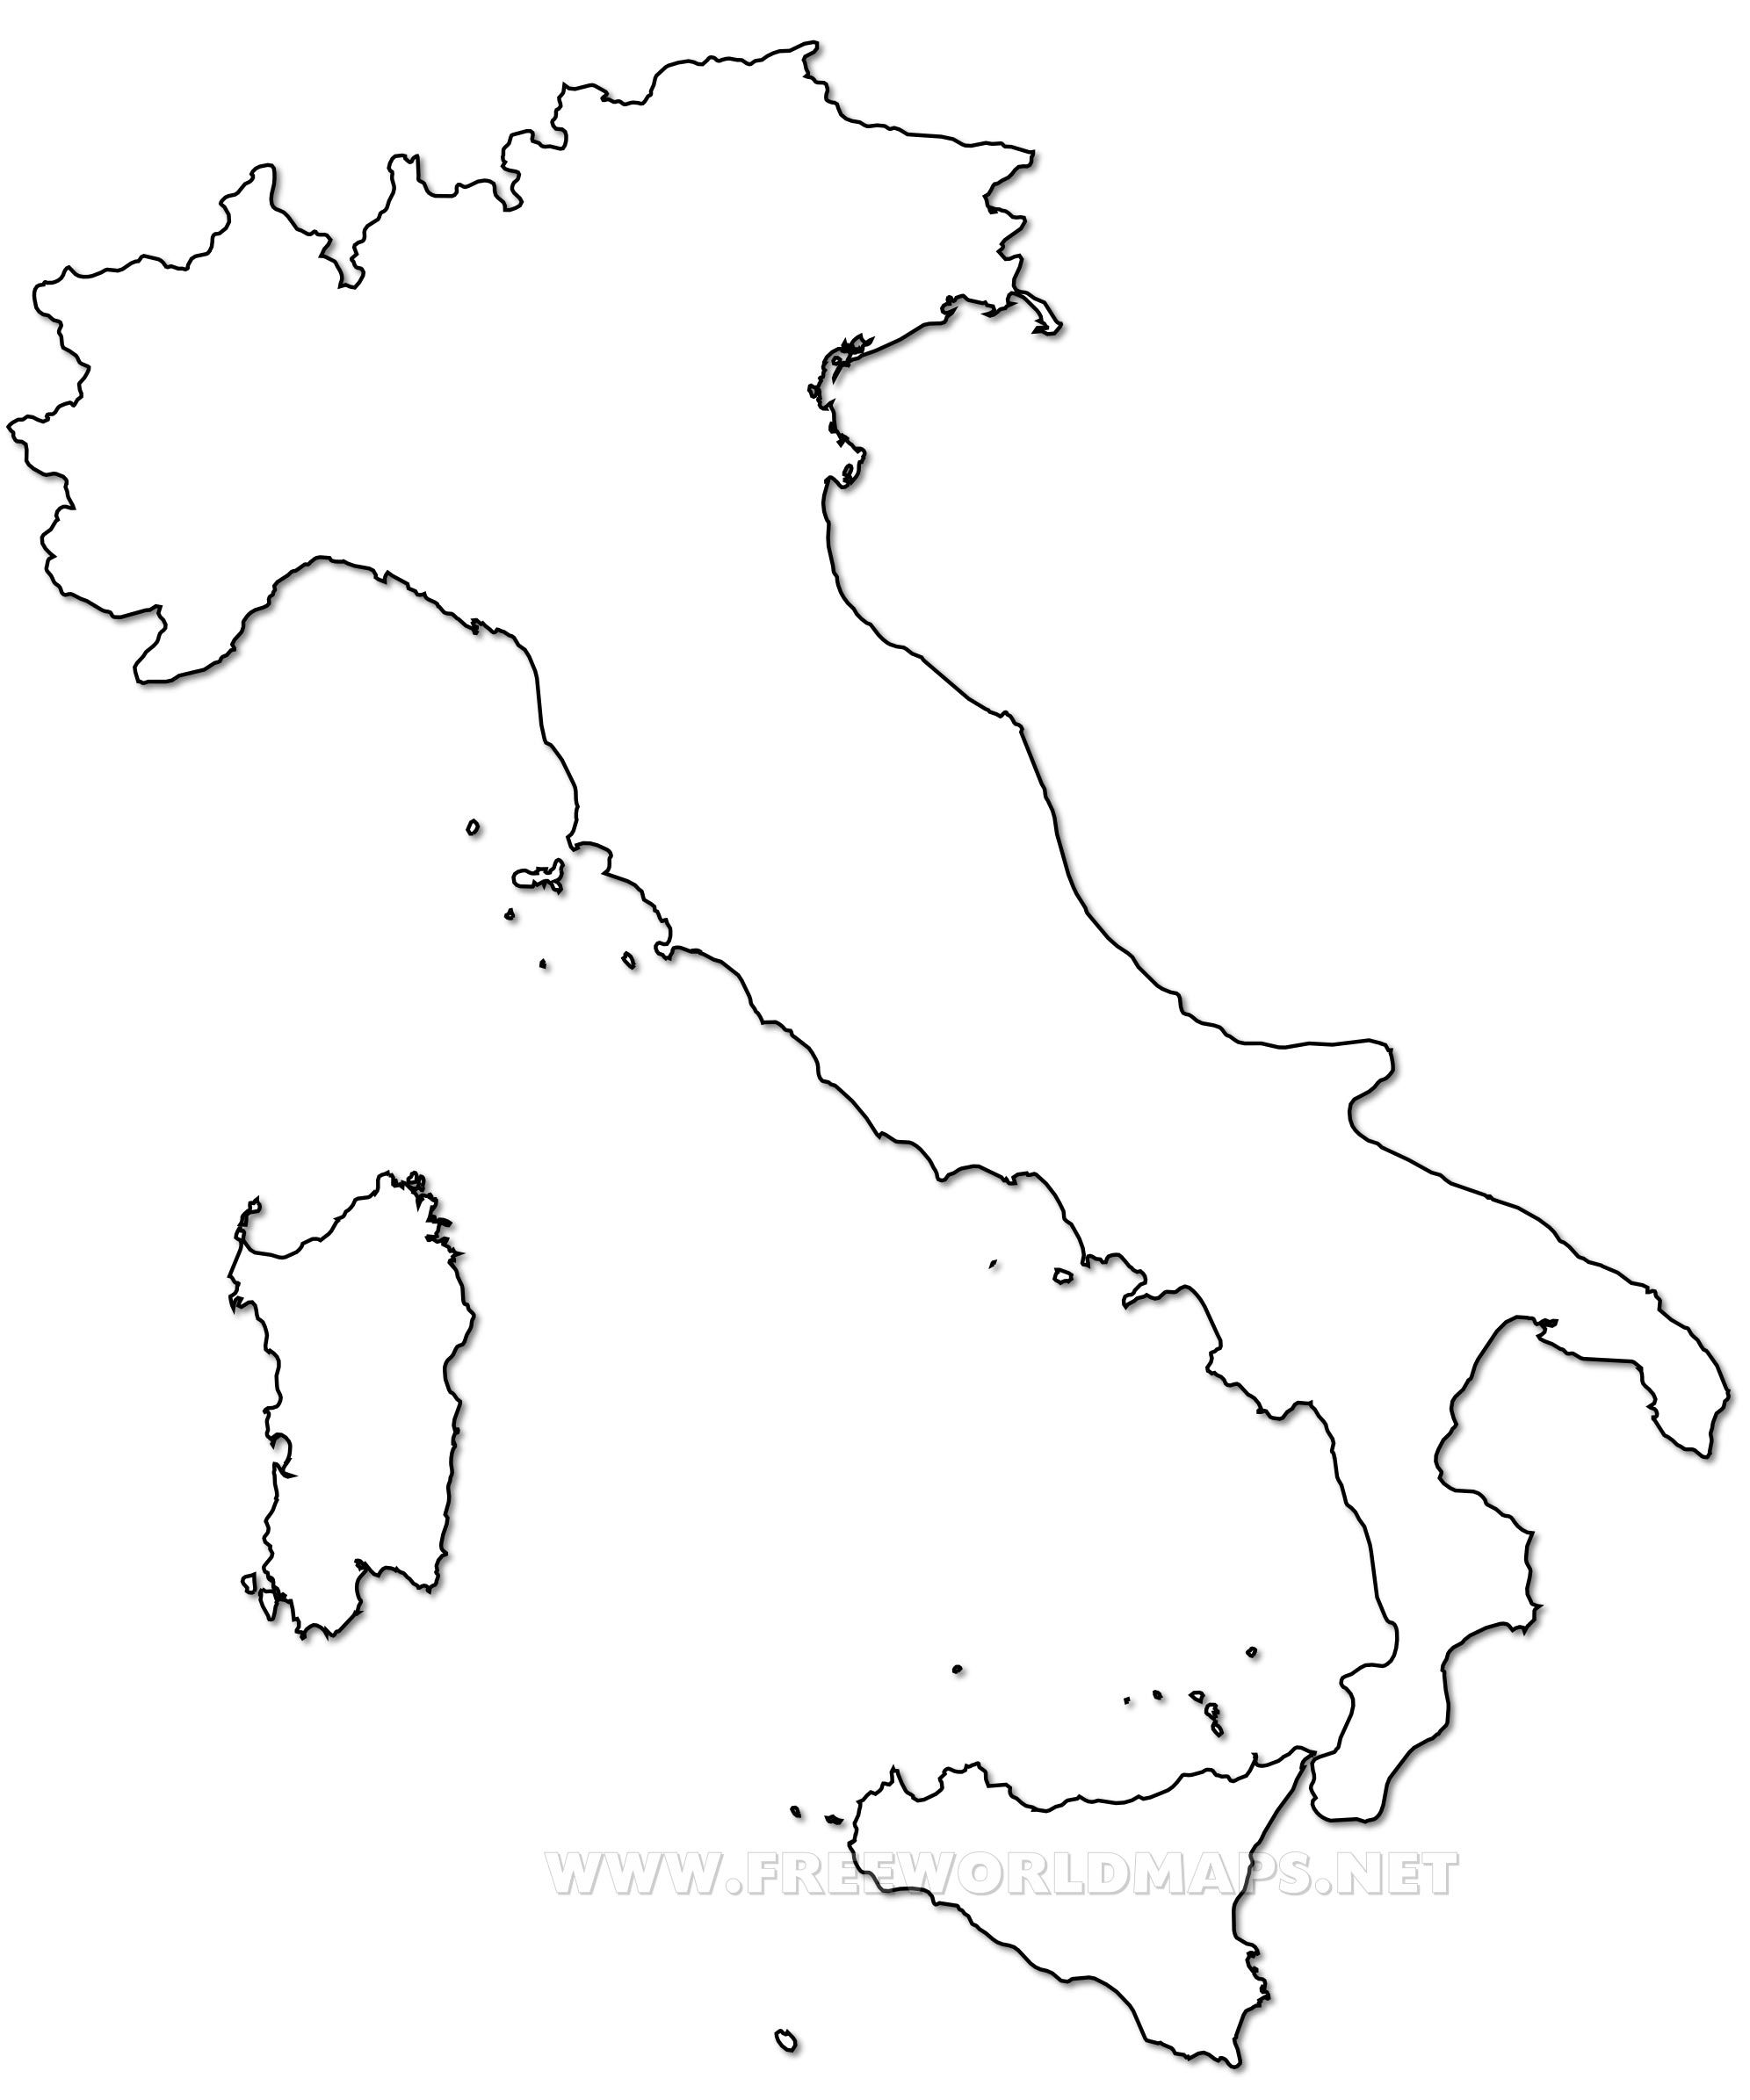 Map Of Italy Simple.Outline Map Of Italy Printable With Italy Political Map